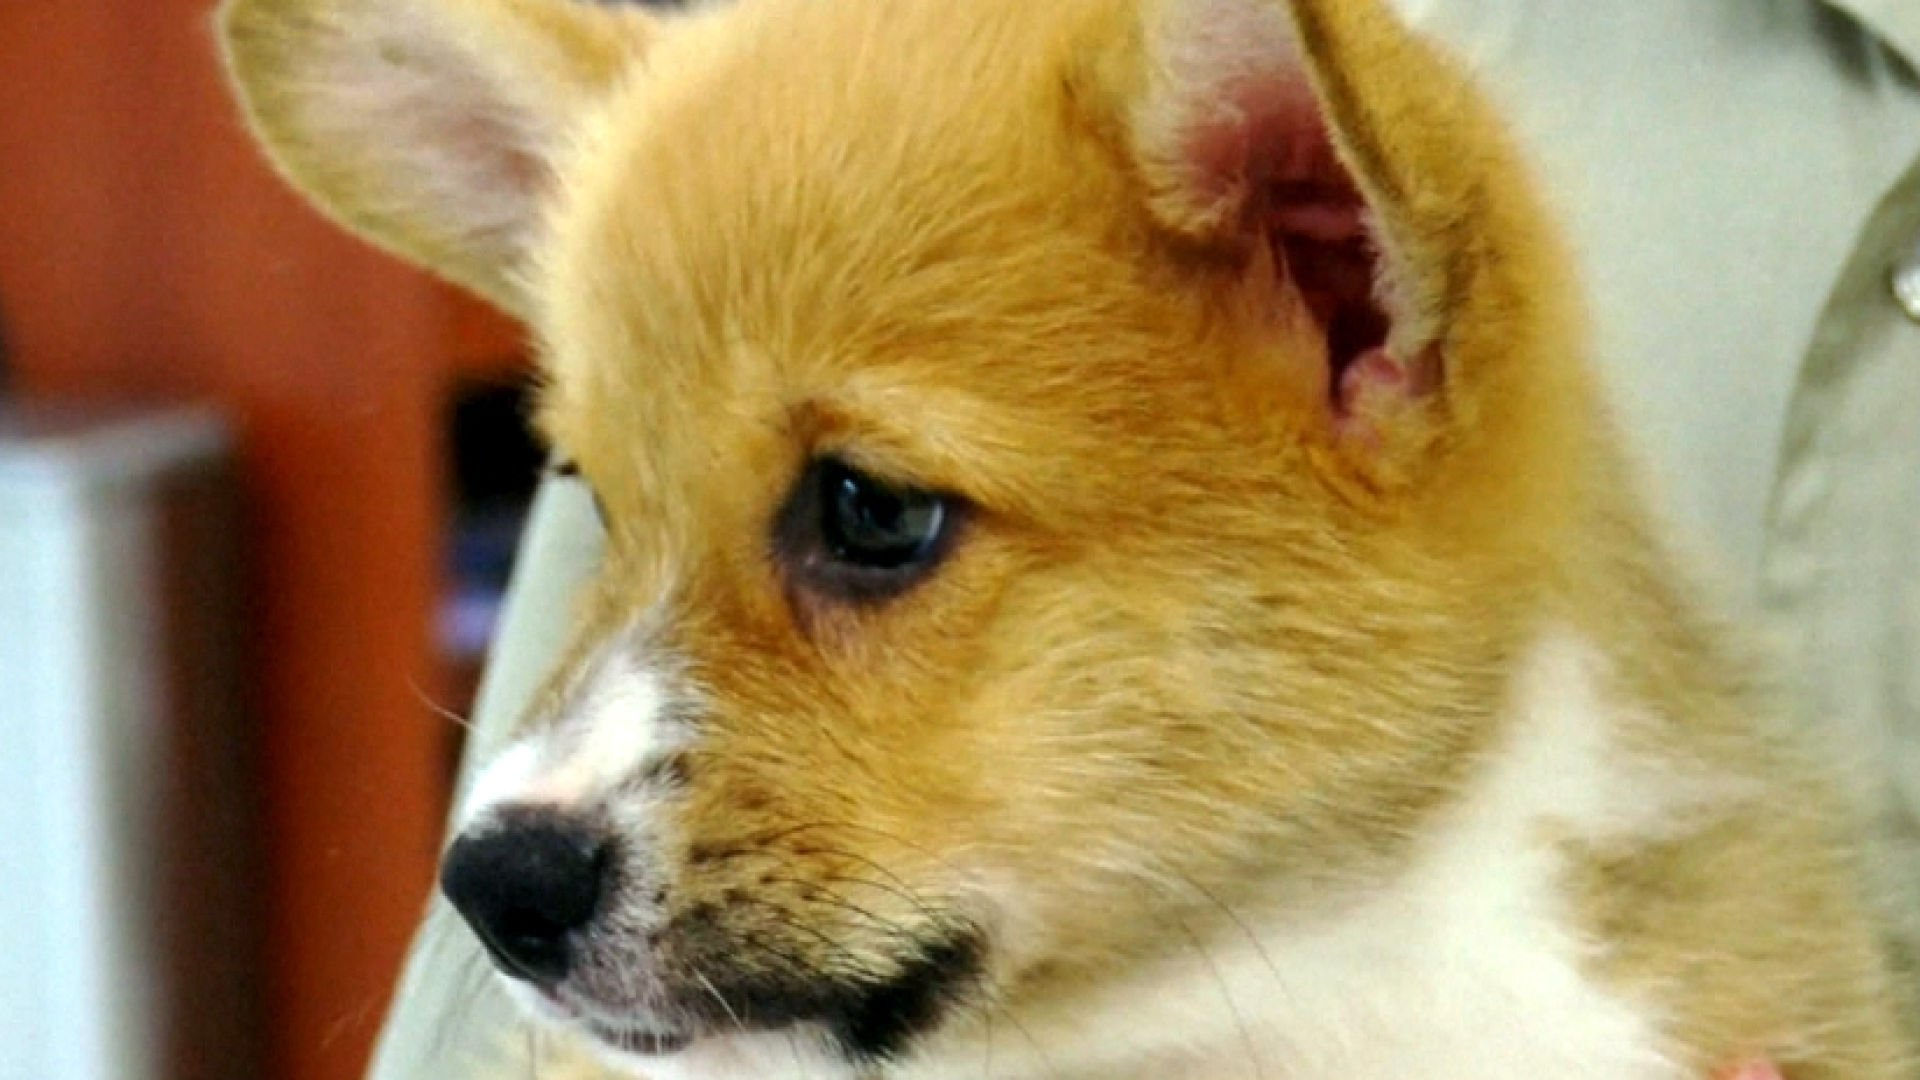 Bacterial infection outbreak traced back to puppies at national pet store chain